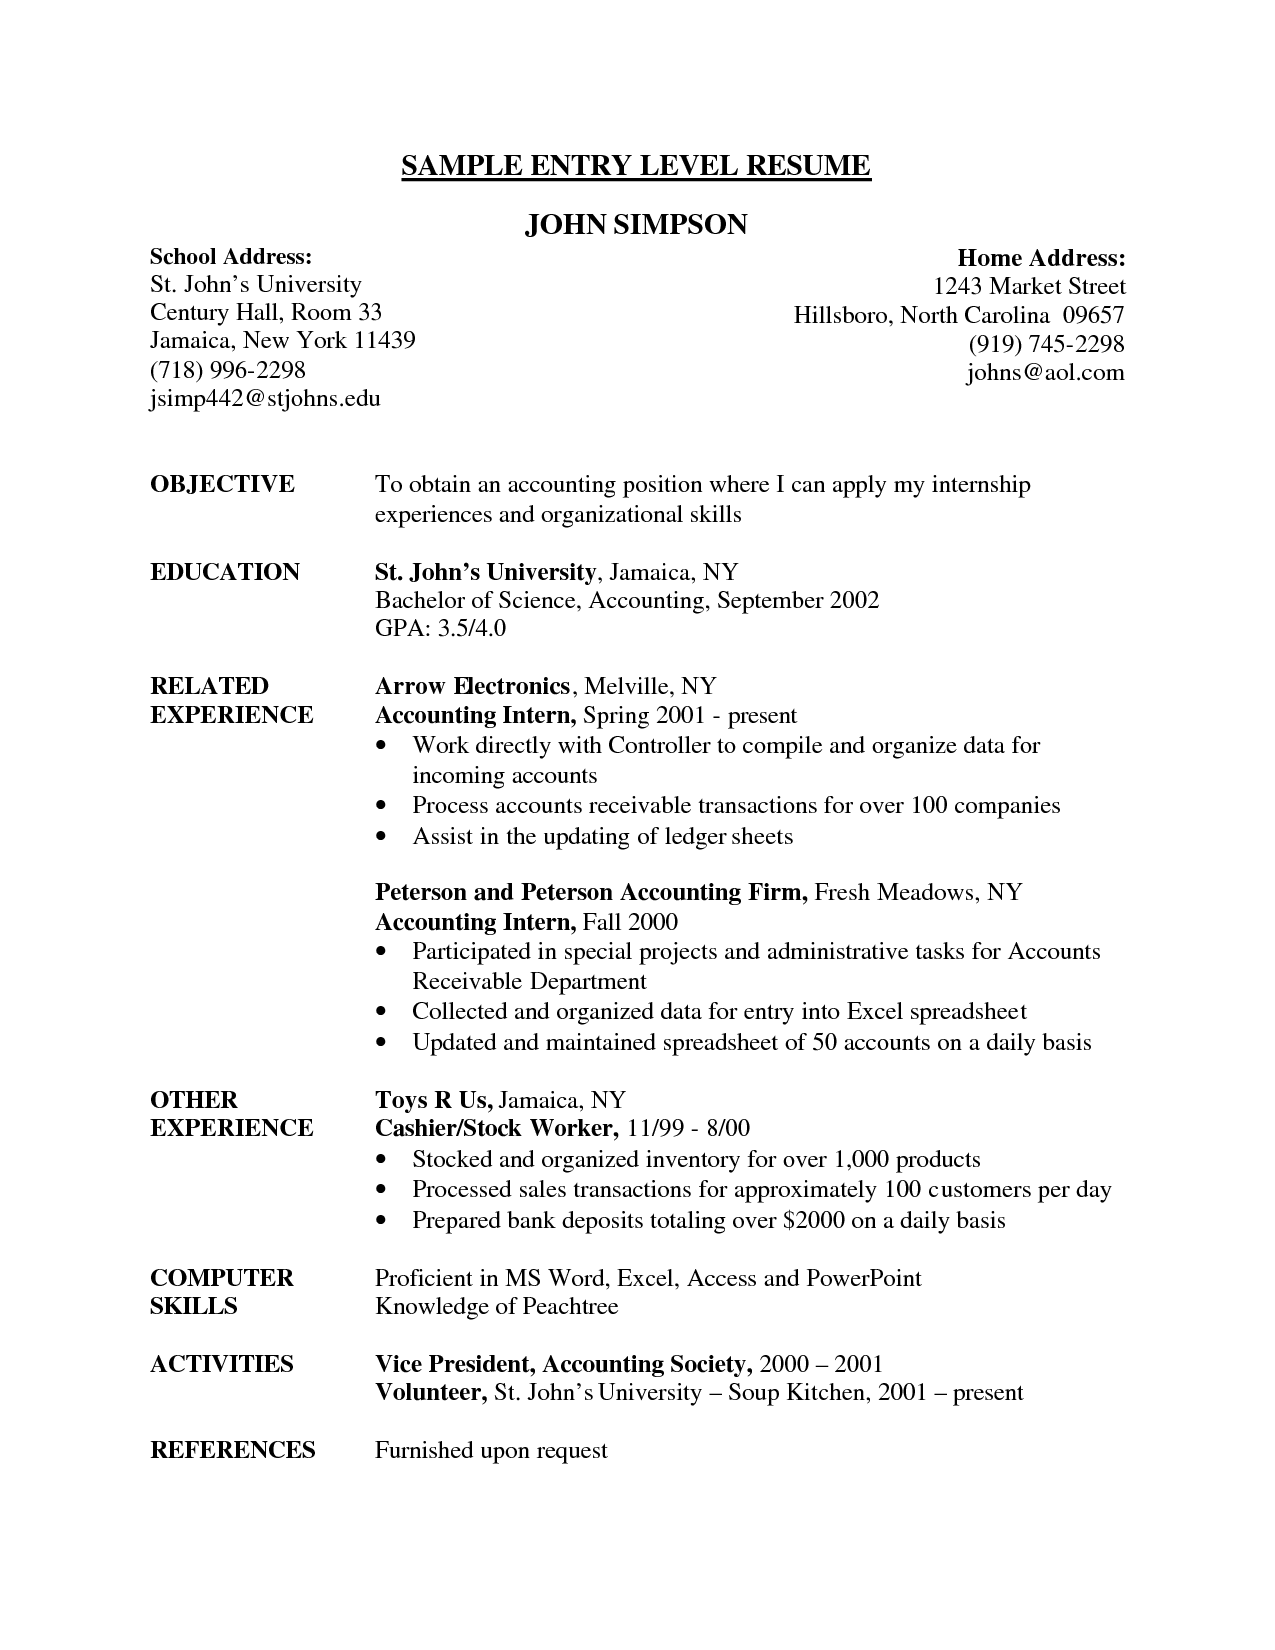 resume sample for accounting students with no experience